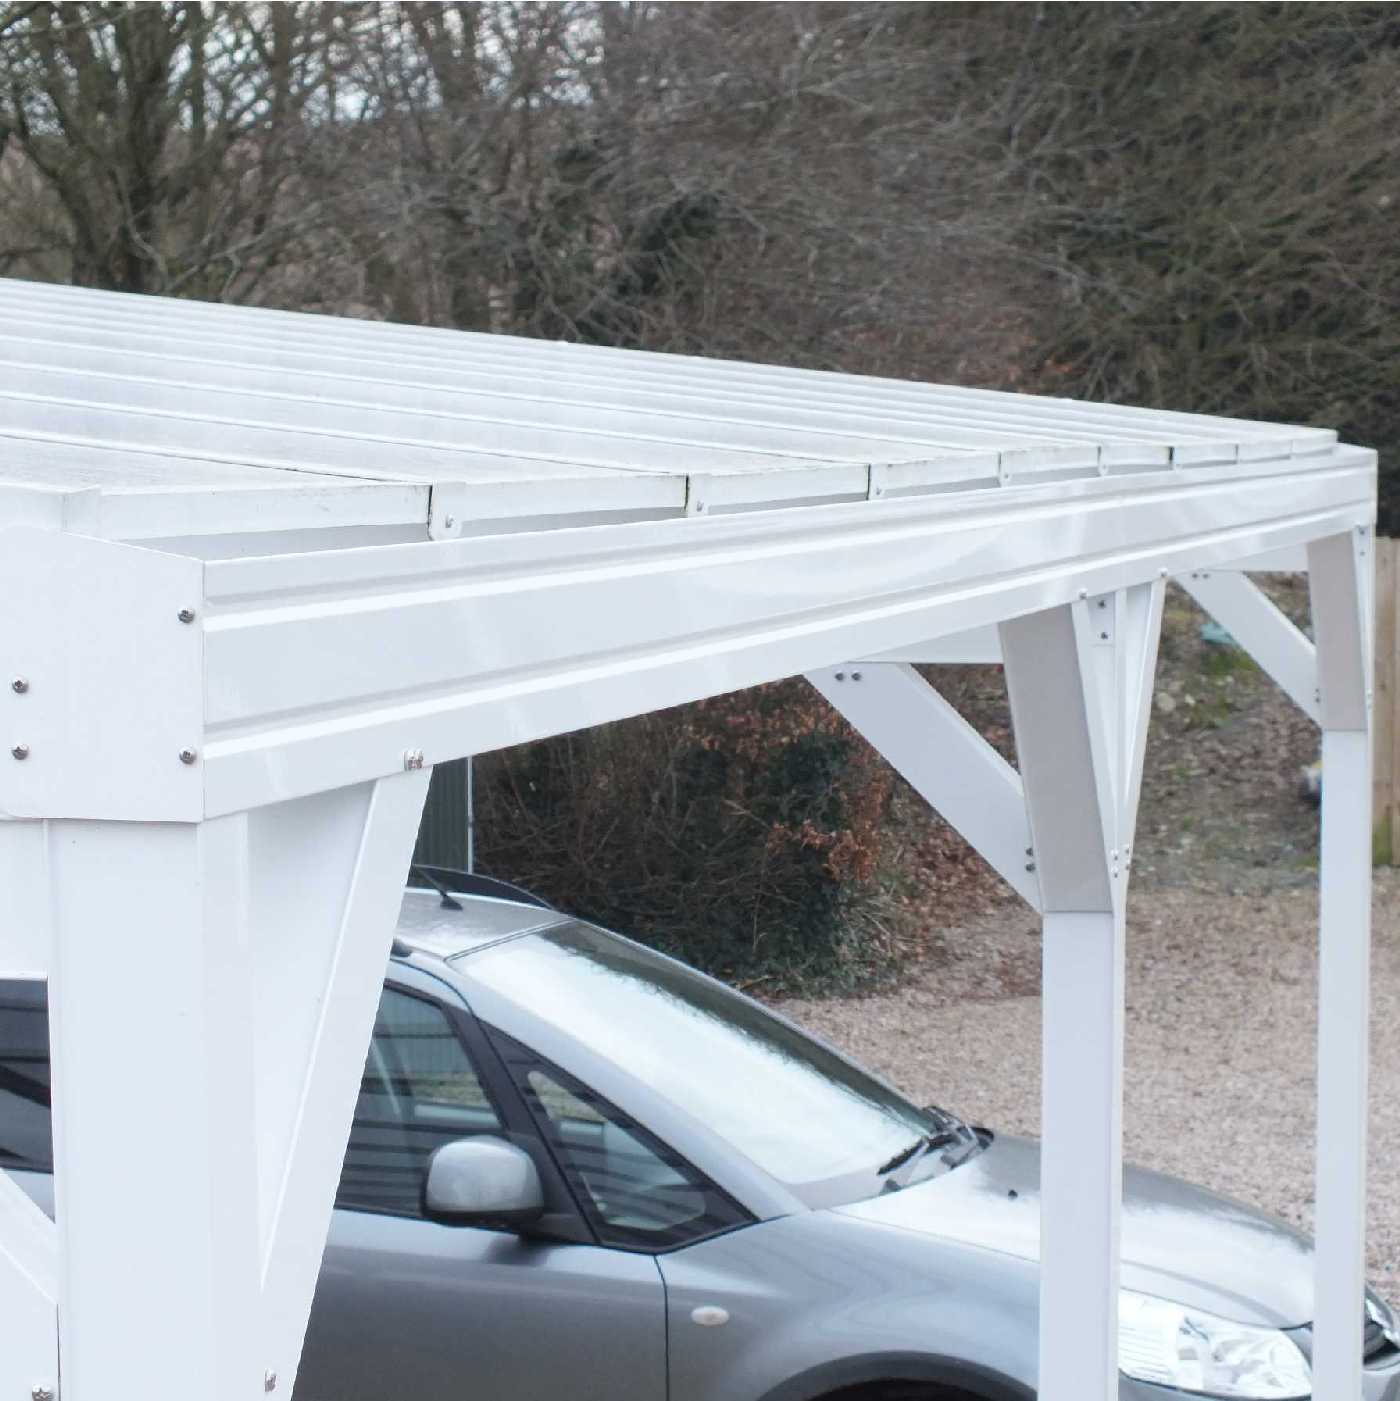 Omega Smart Free-Standing, MonoPitch Roof Canopy with 16mm Polycarbonate Glazing - 3.1m (W) x 2.5m (P), (4) Supporting Posts from Omega Build